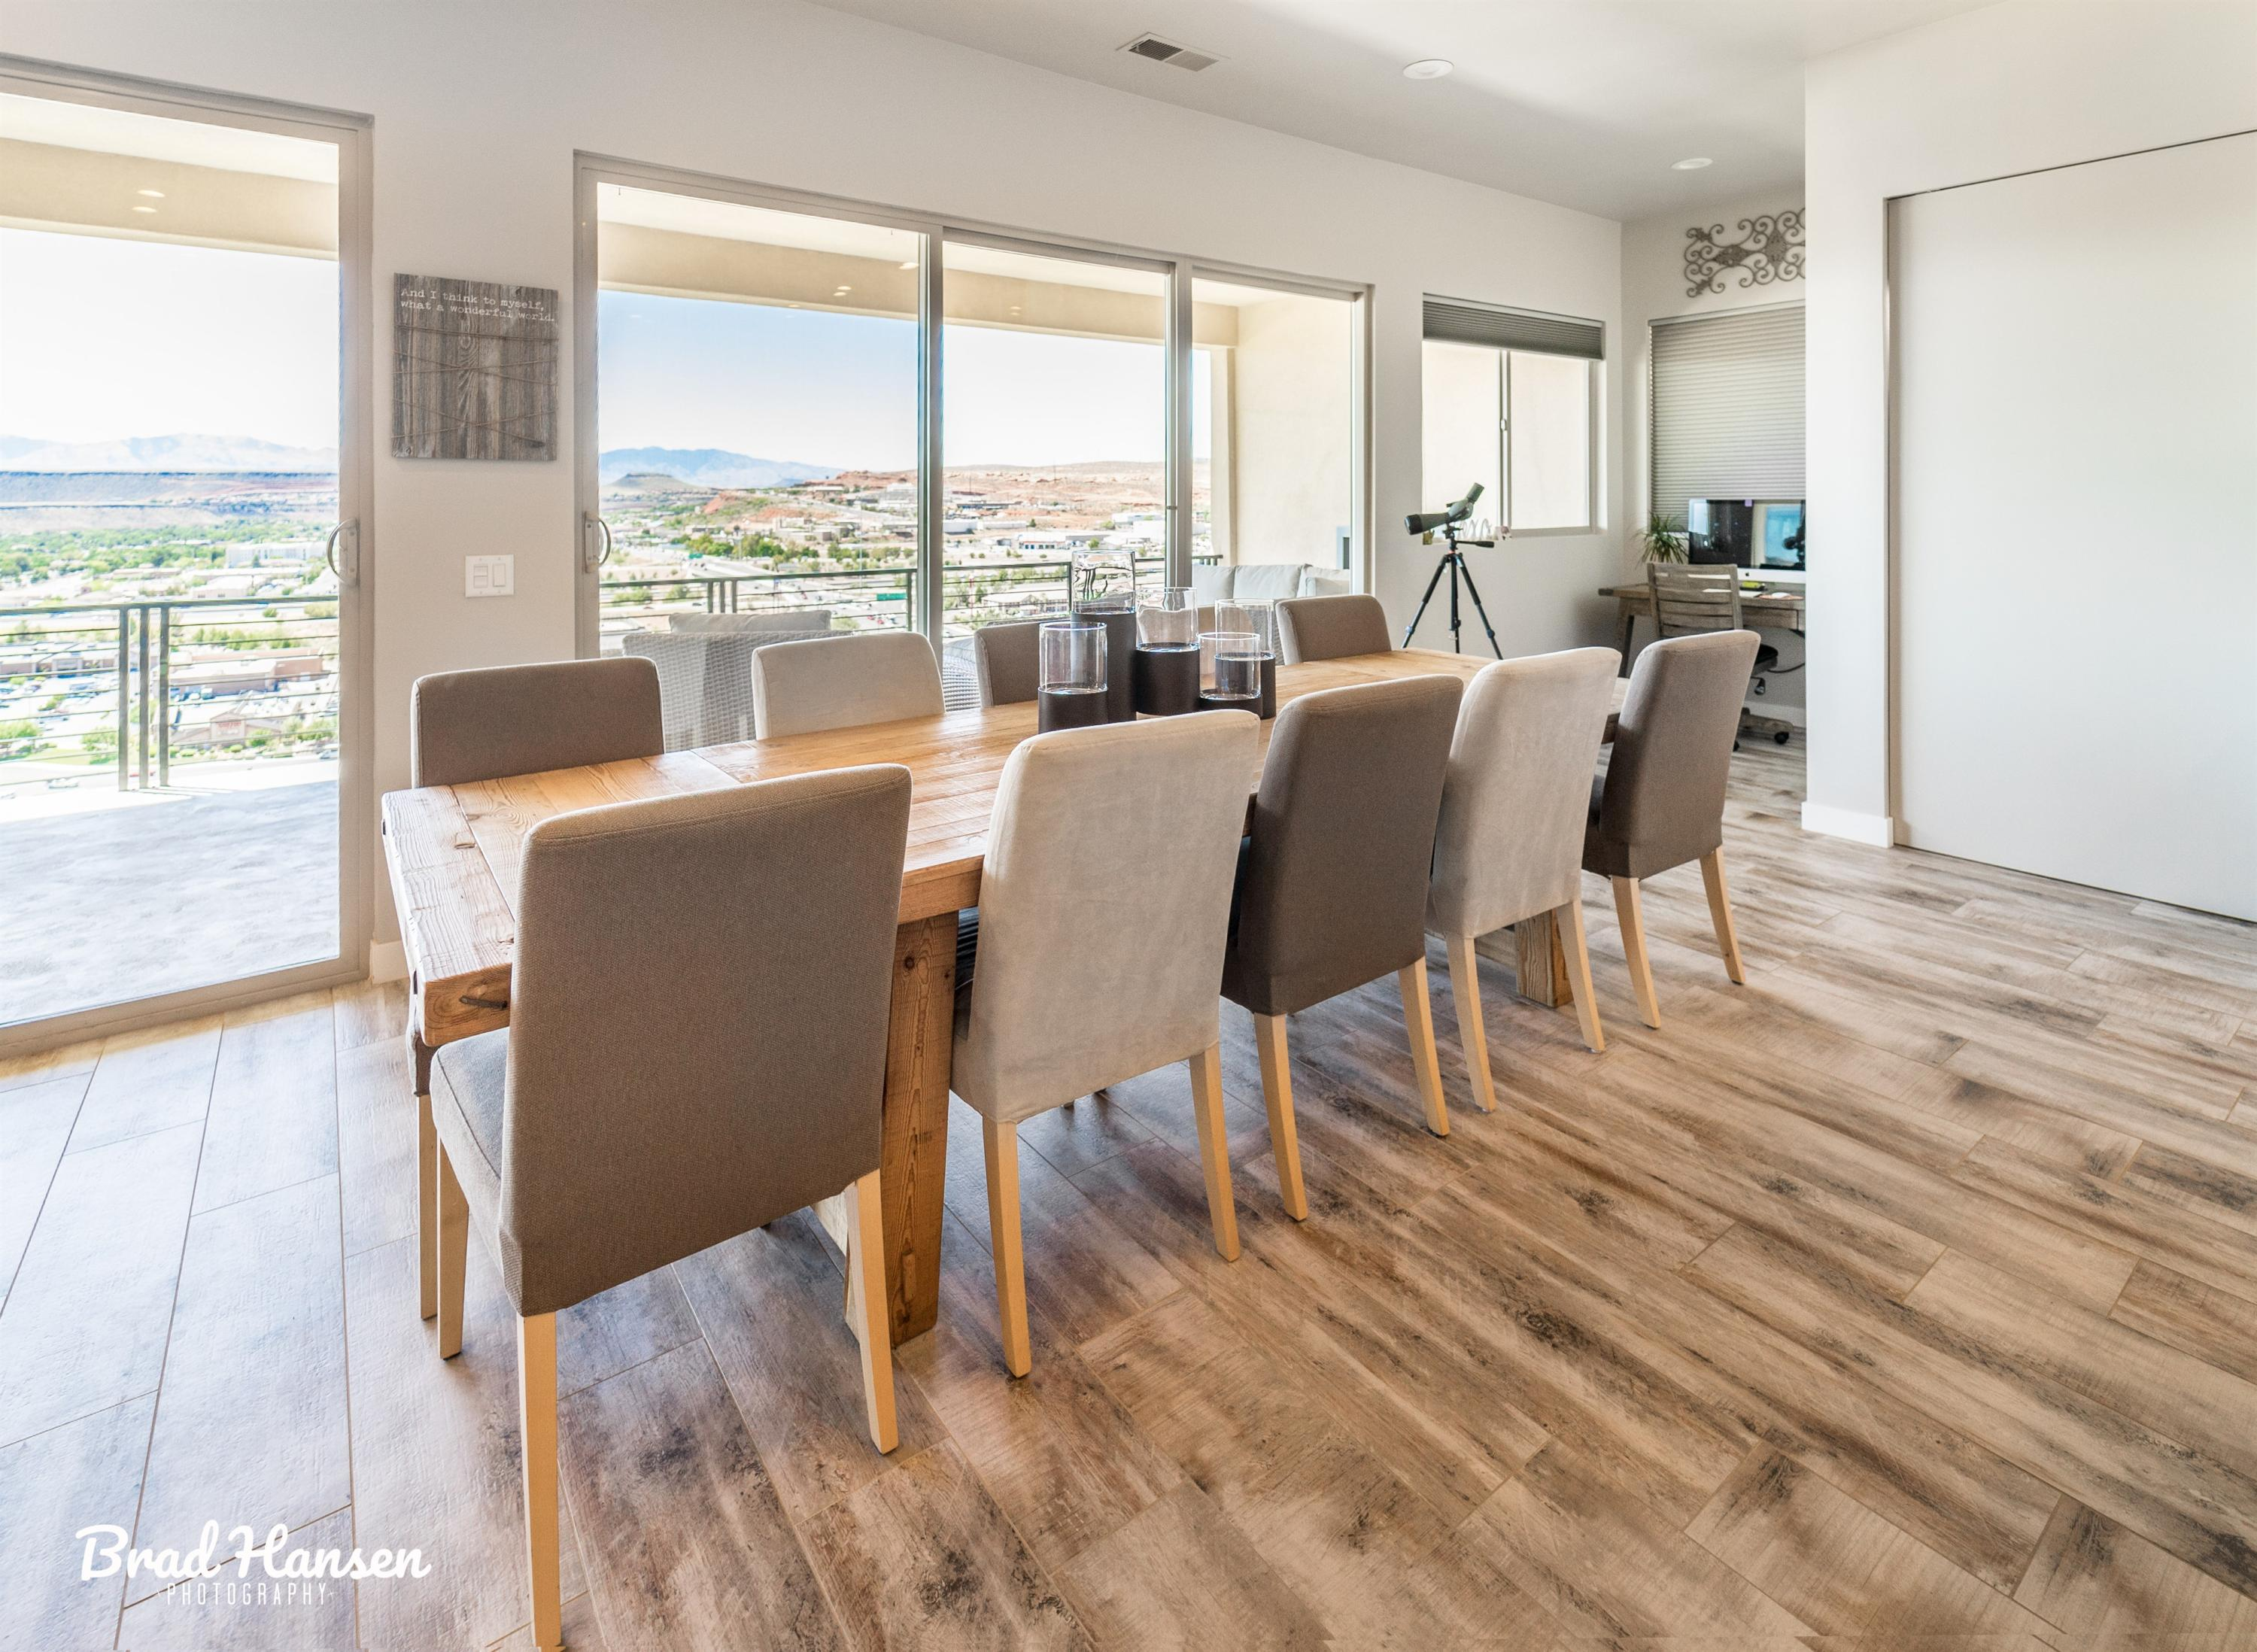 Custom in every way, handicap friendly, contemporary and clean lines. Incredible city and mountain views. No HOA, close to everything. 10 minutes to six Golf Courses, 3 minutes to hospital. Wood tile, huge great room, 3\